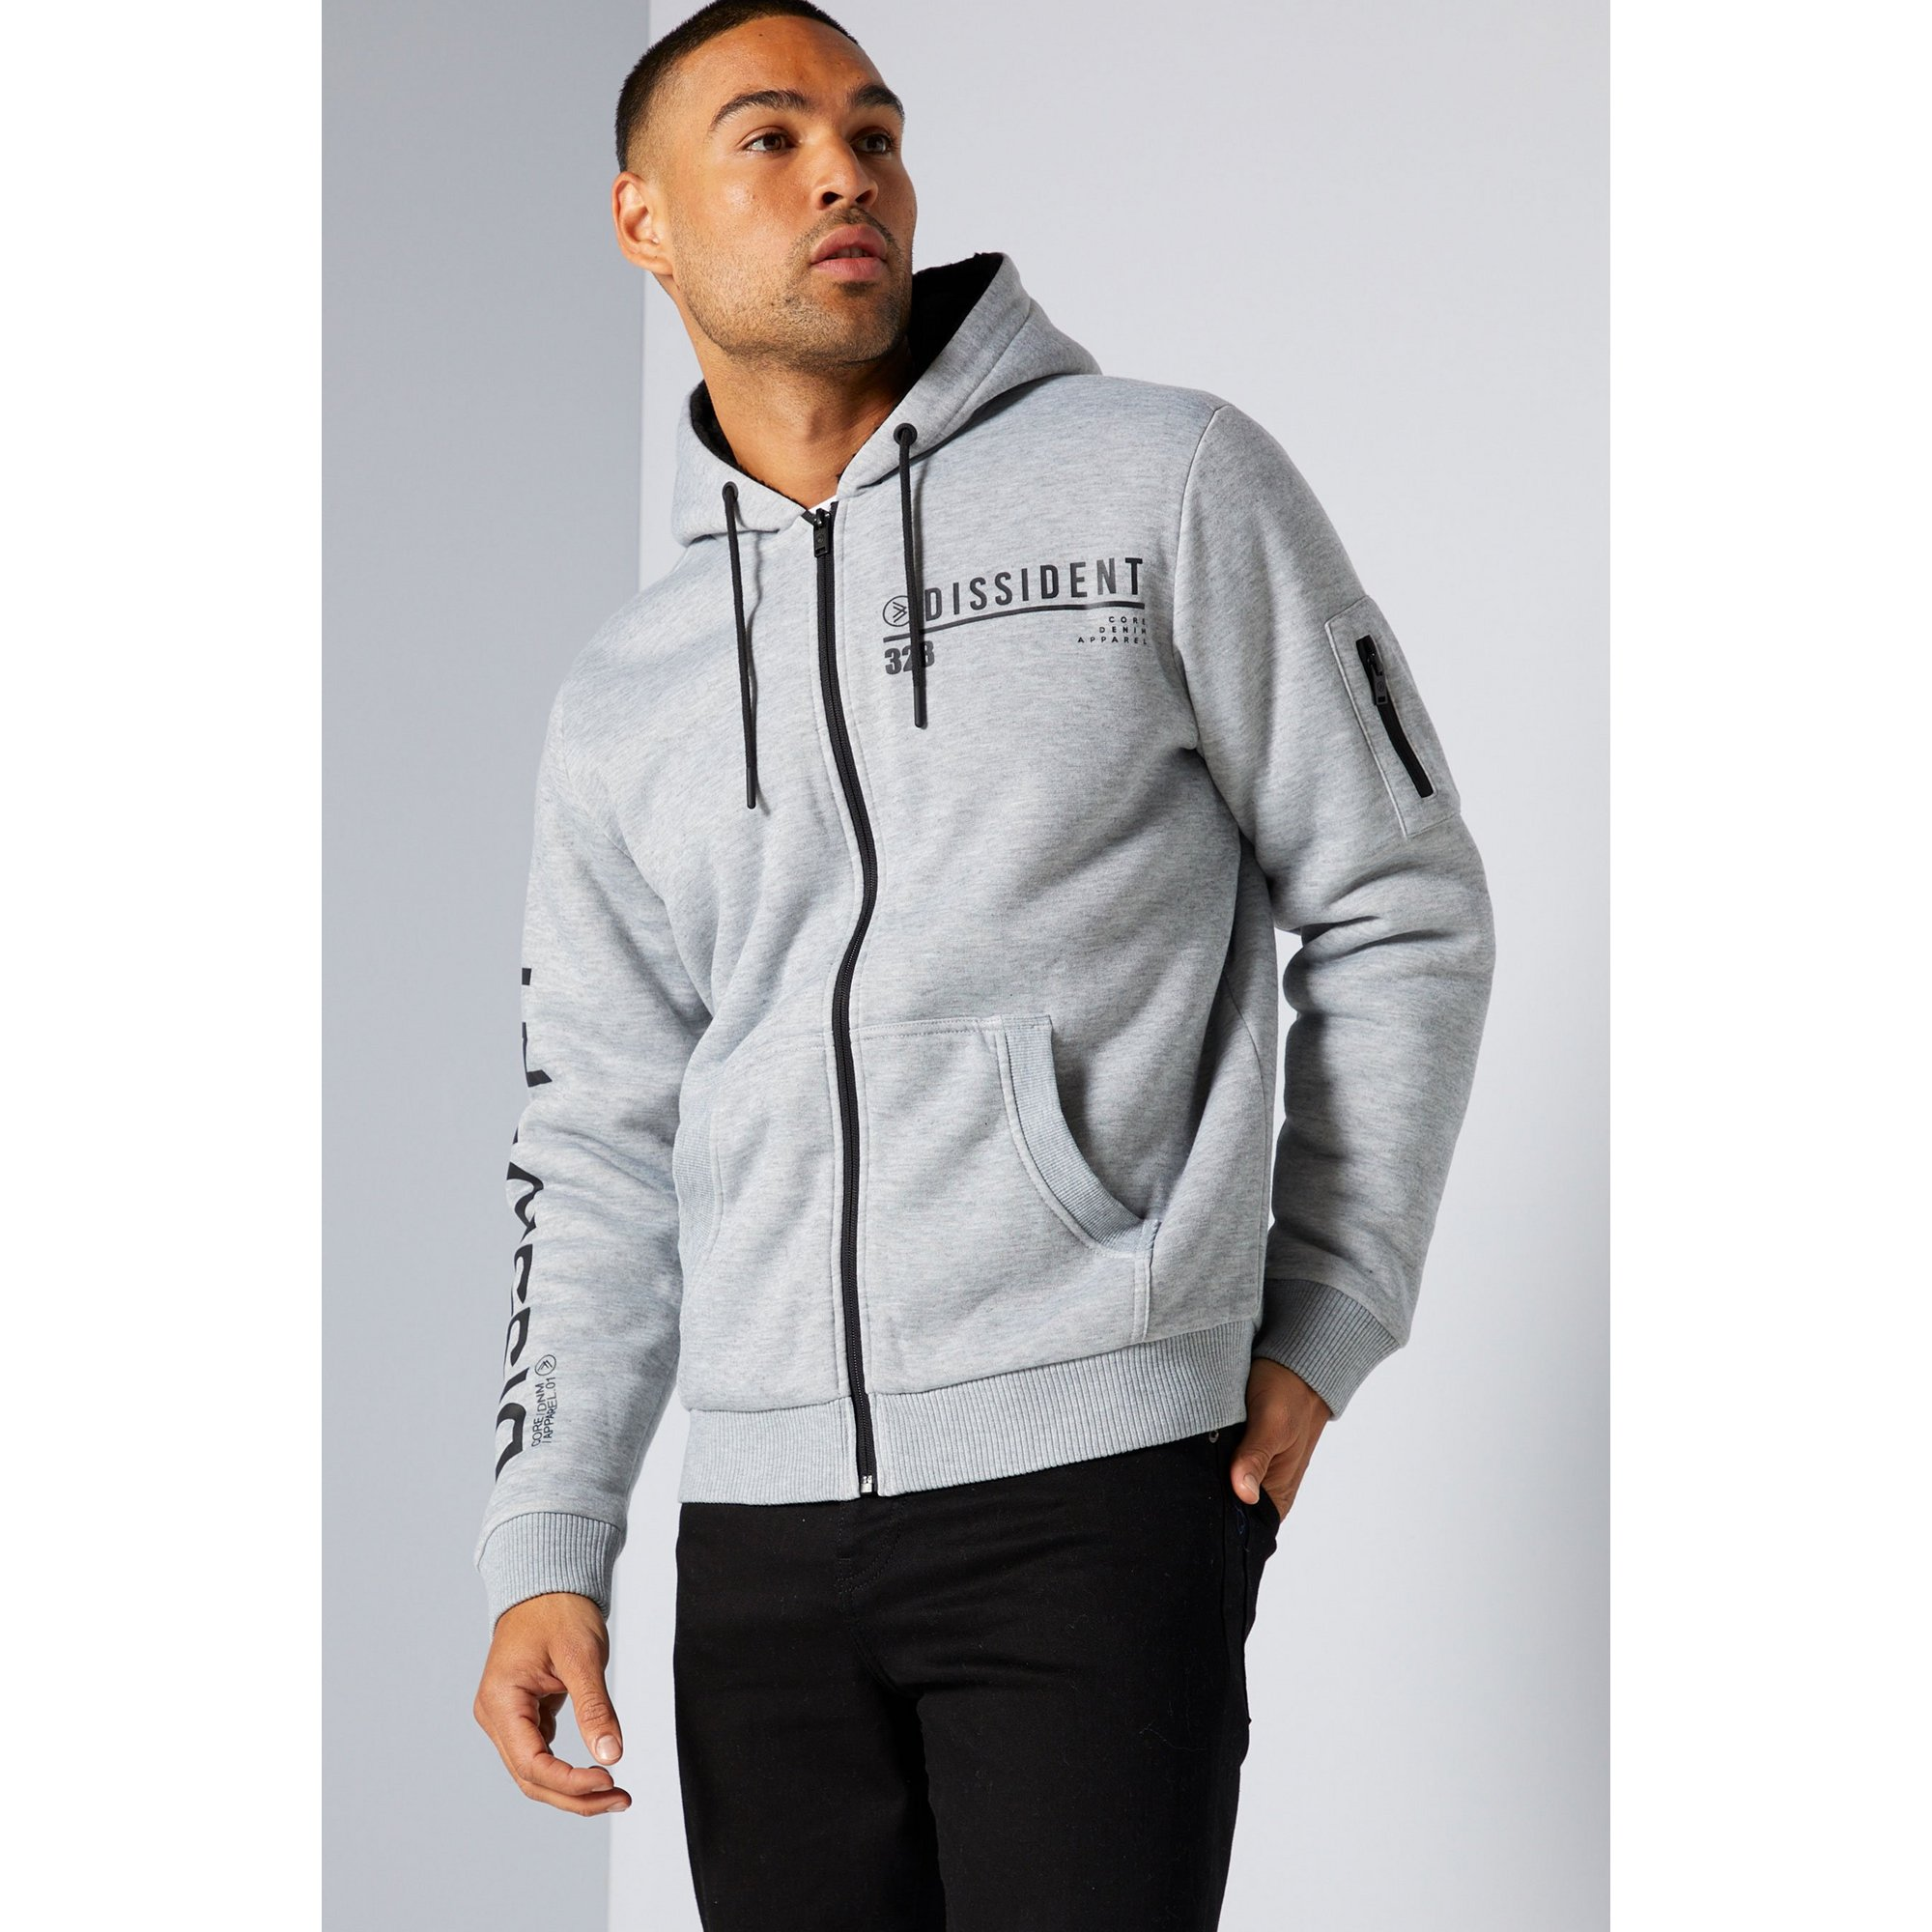 Image of Dissident Borg Lined Zip Through Hoody